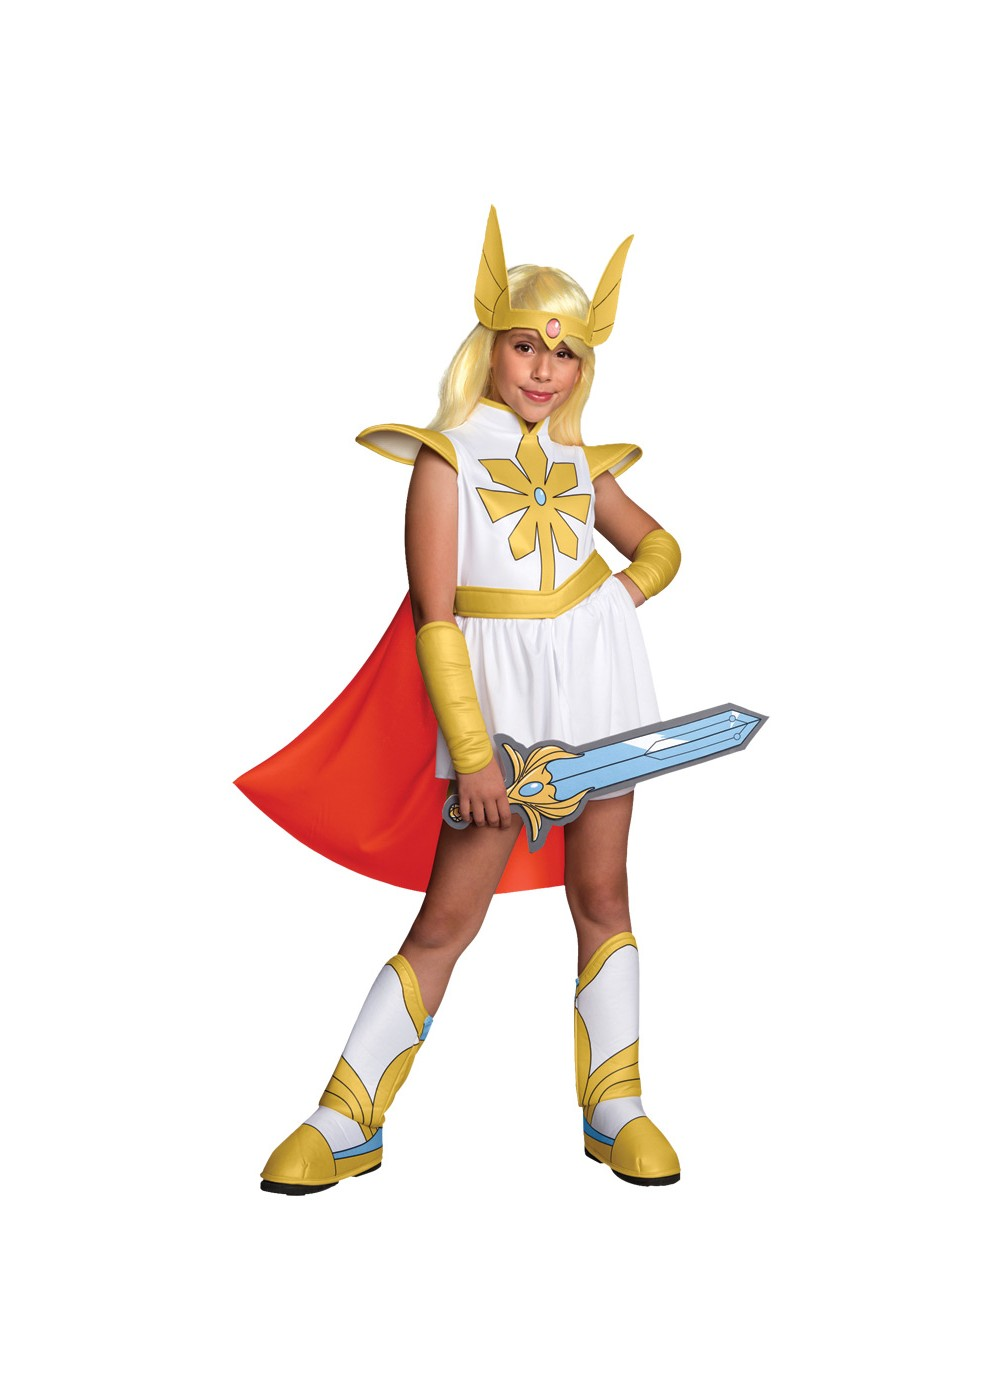 Kids She Ra Princess Of Power Costume